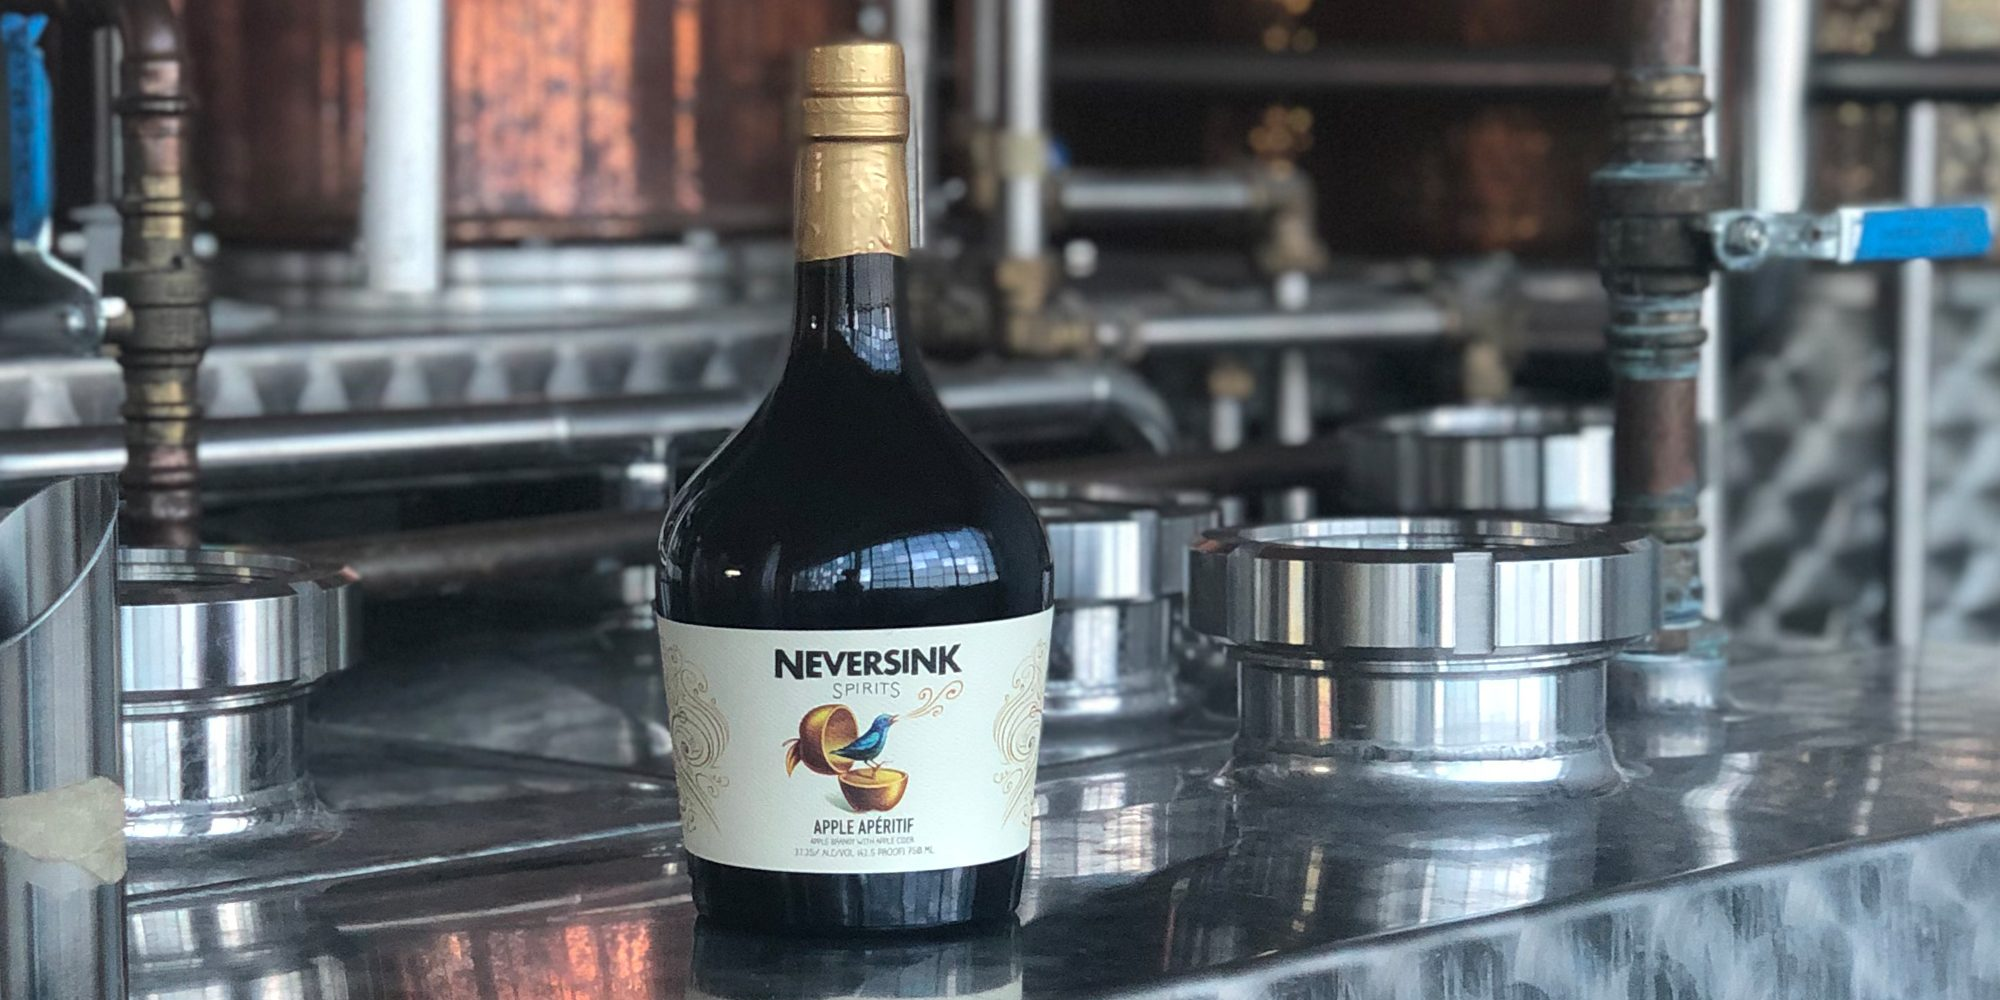 Neversink Spirits Apple Aperitif